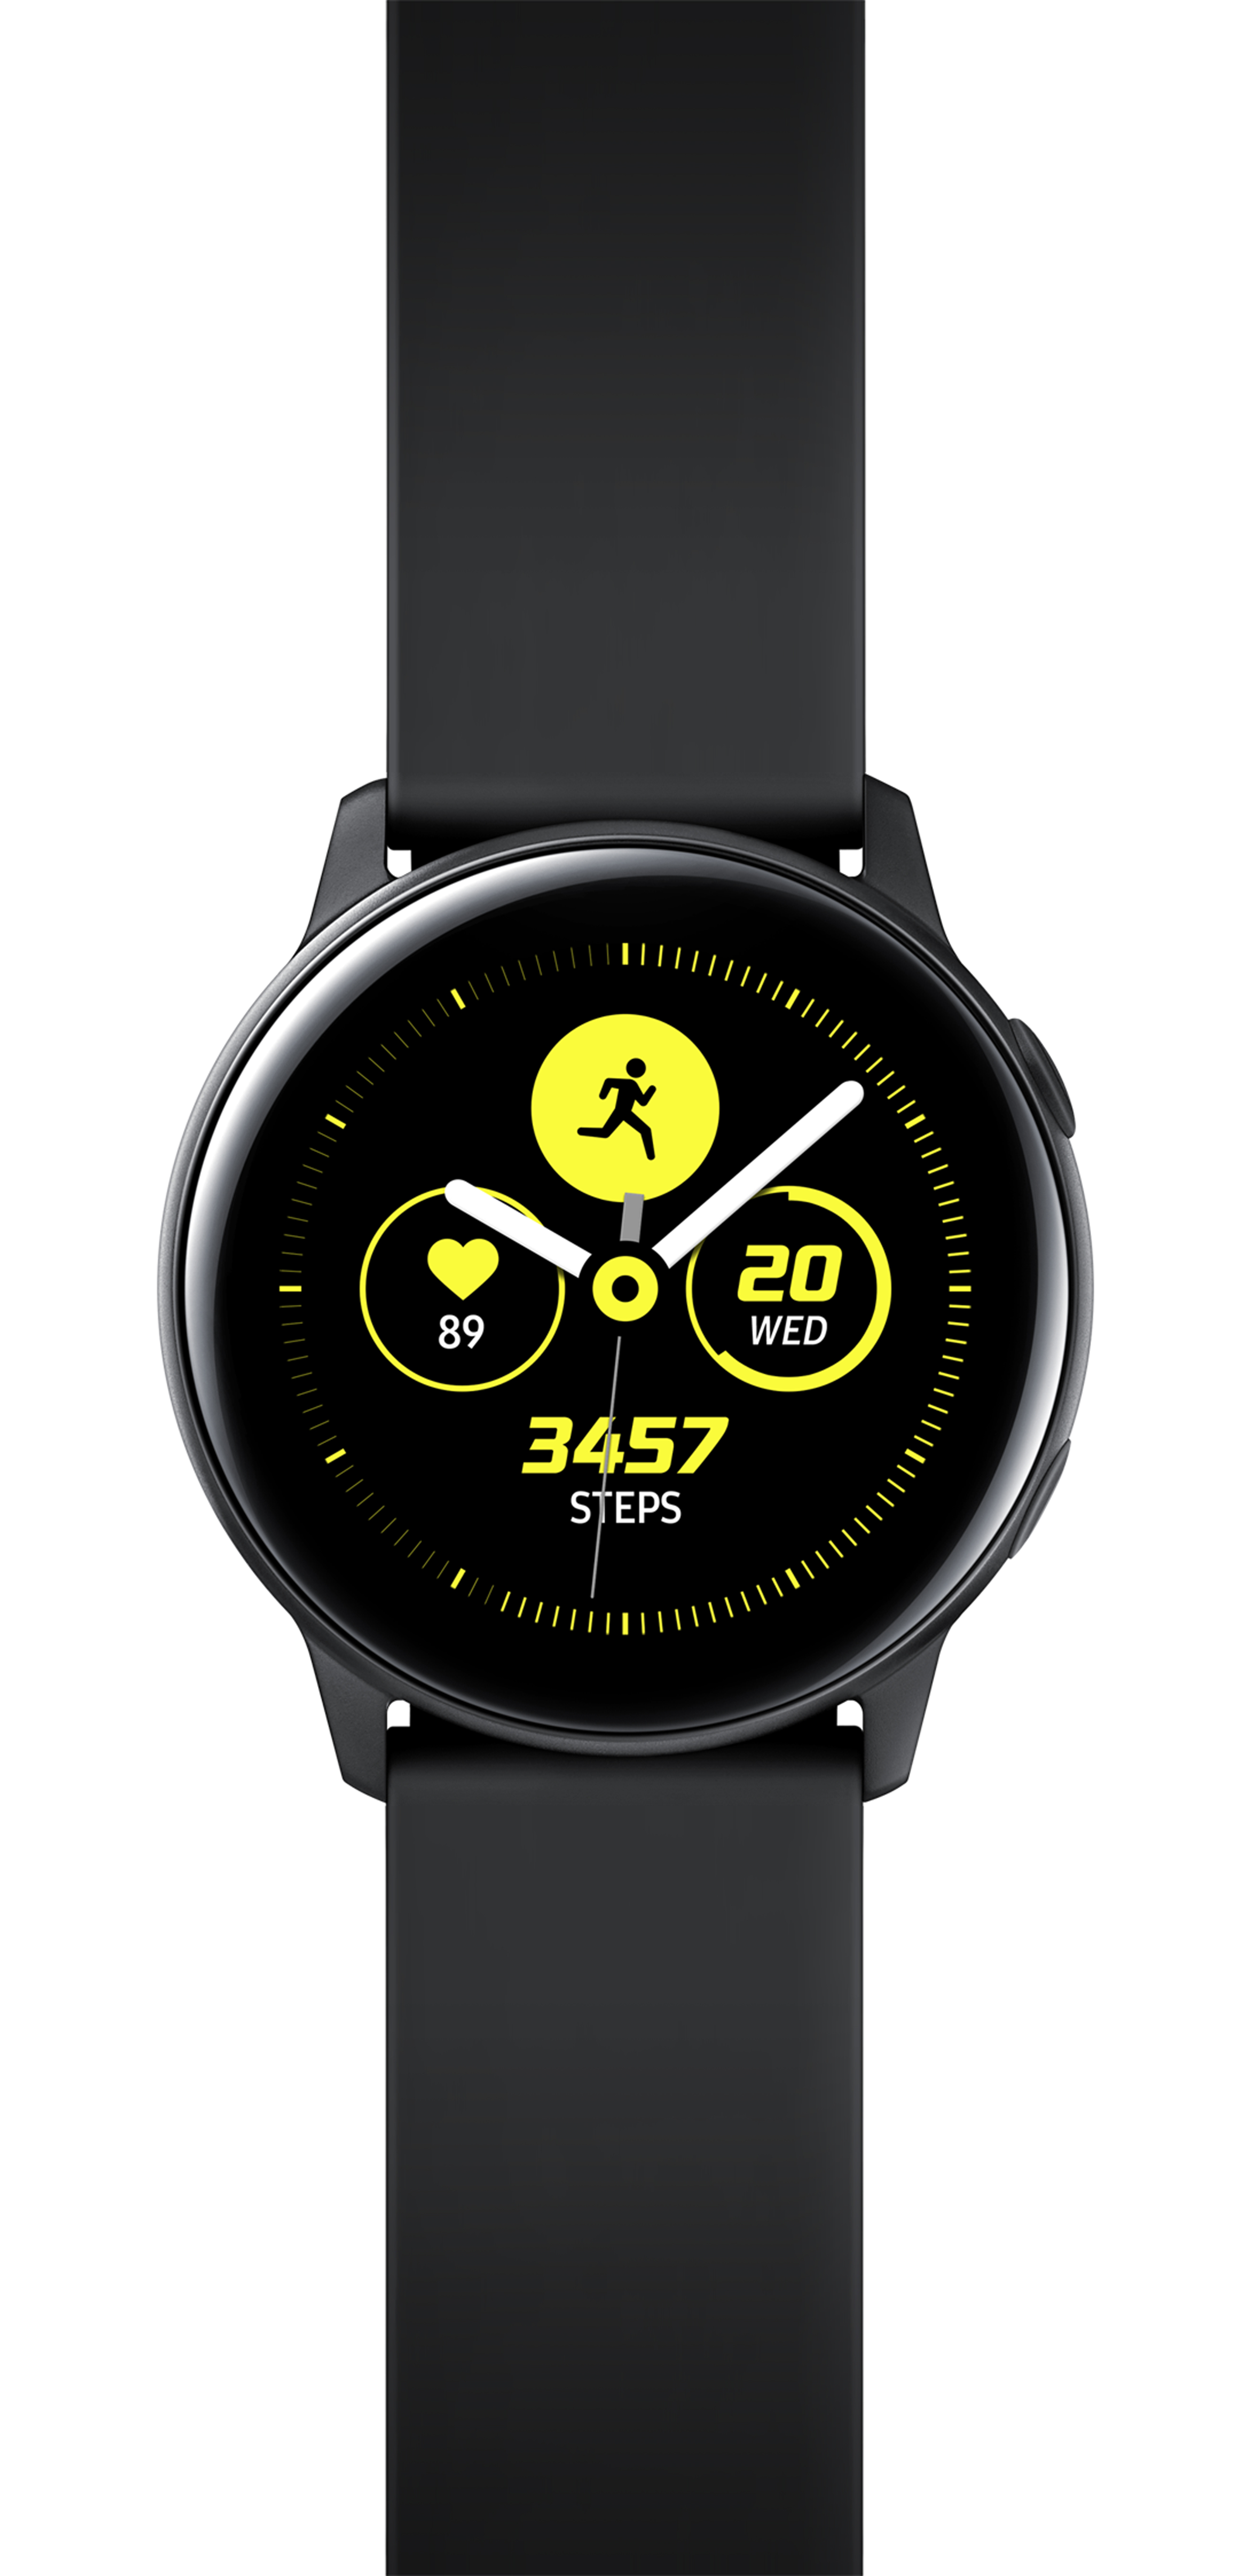 Samsung's new Galaxy Watch Active measures blood pressure